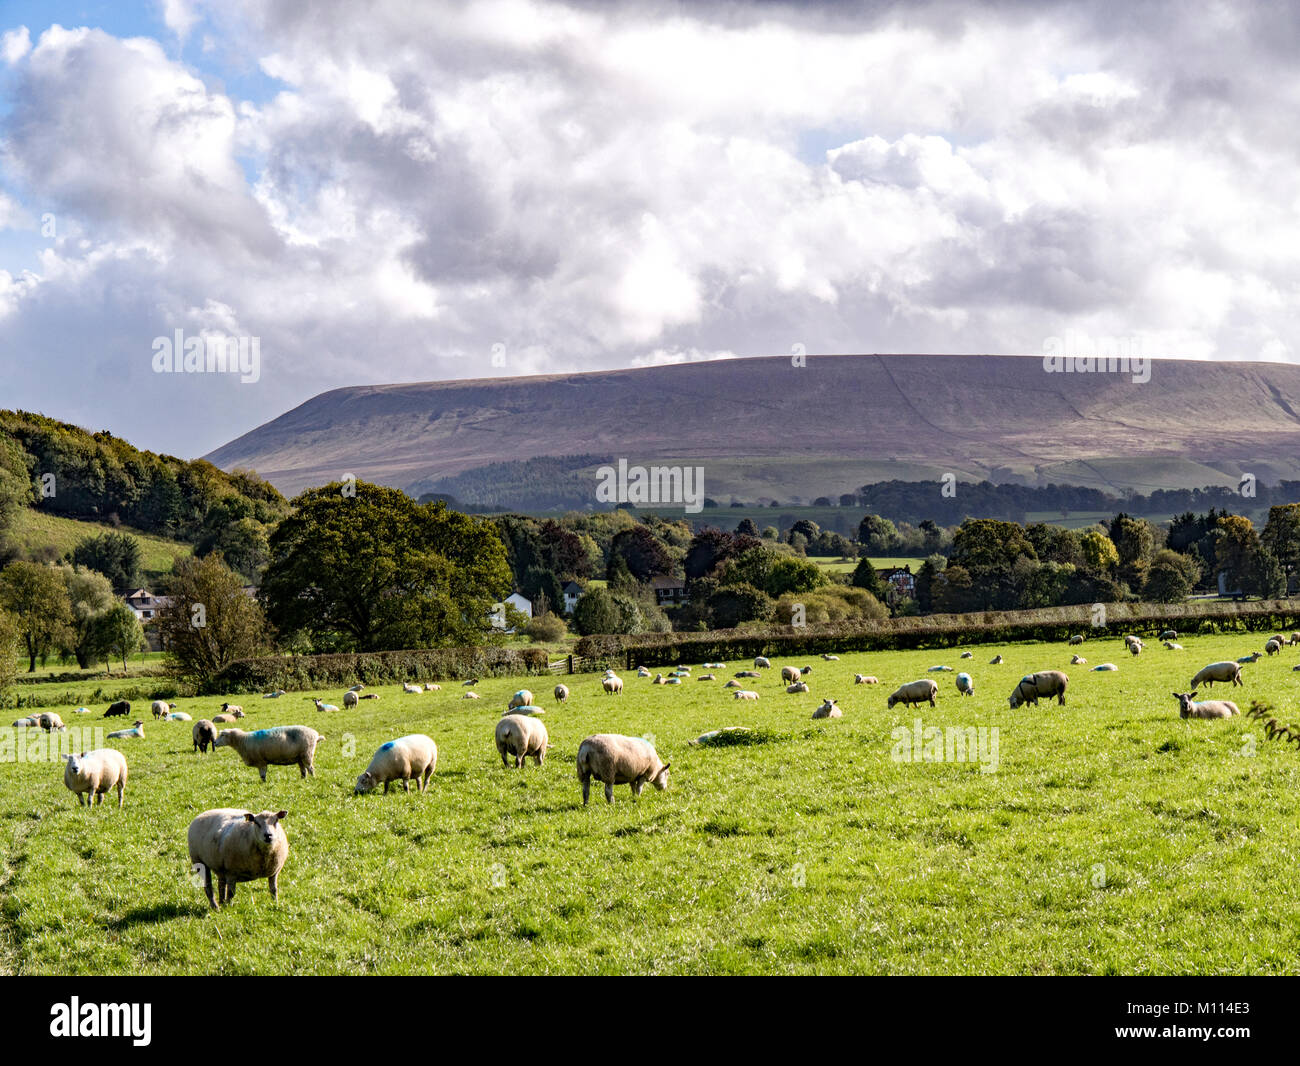 Texel sheep grazing at Sawley, Clitheroe, with Pendle Hill in the distance. - Stock Image